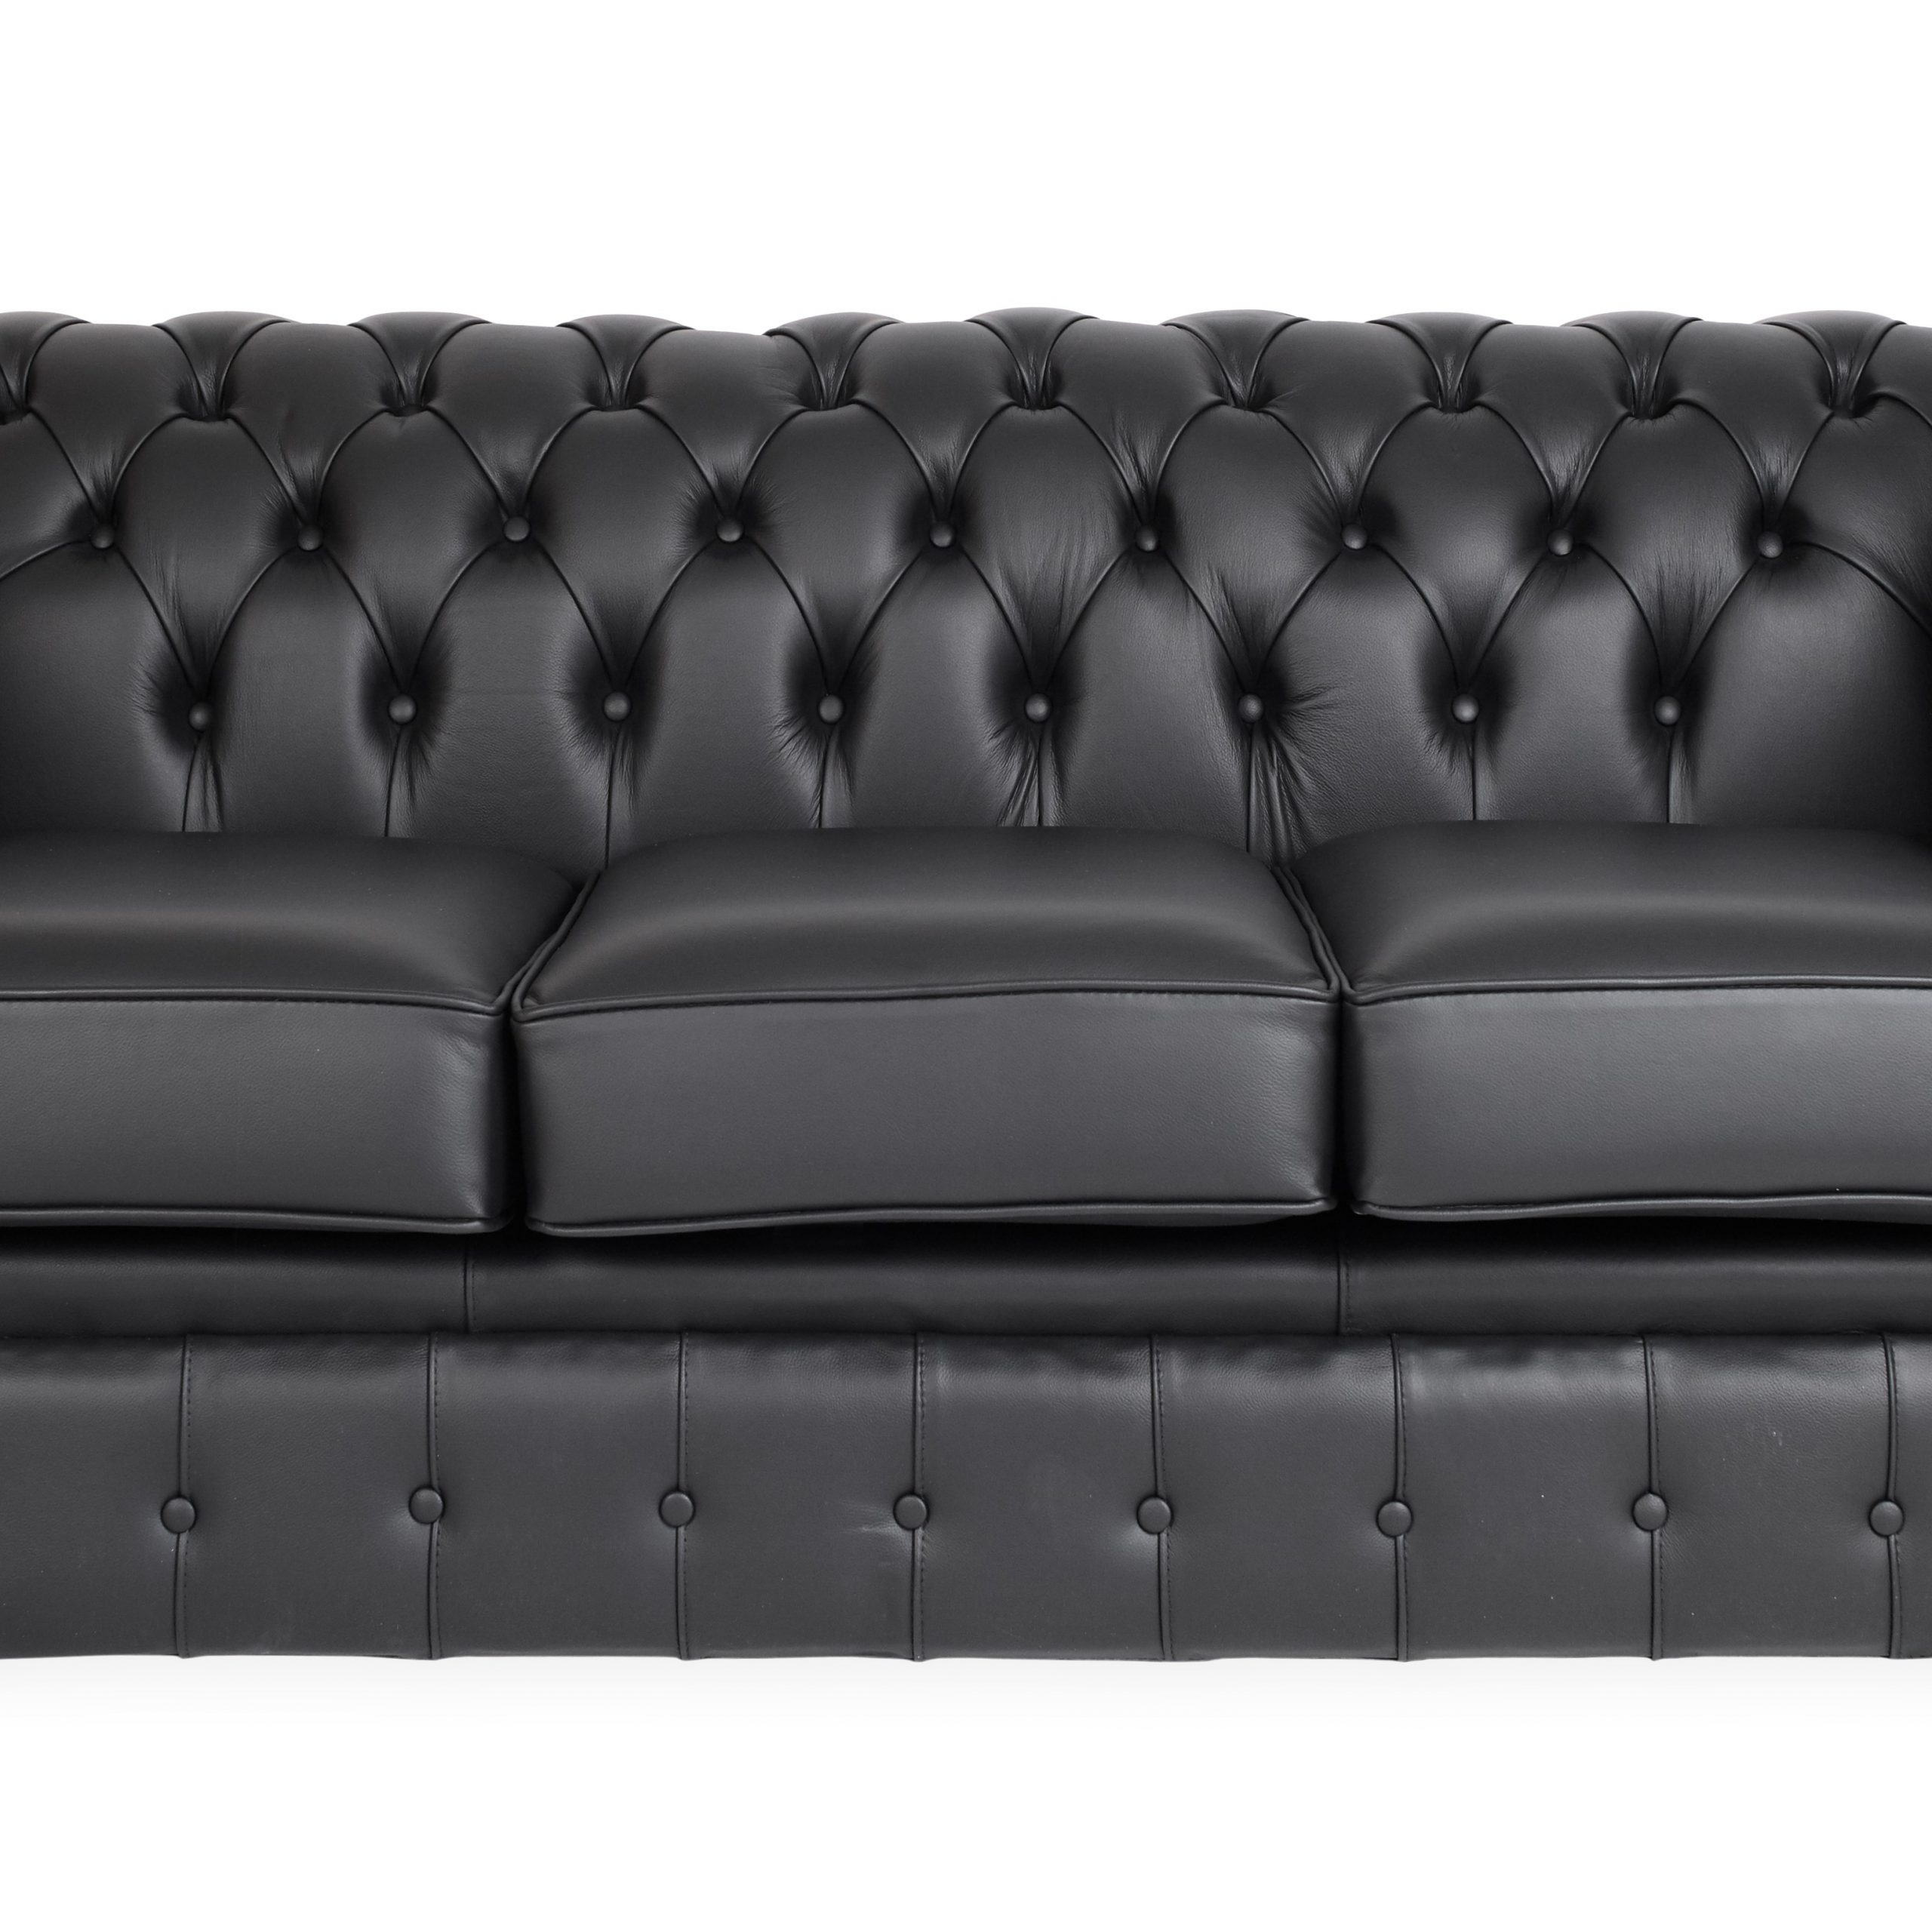 Black Chesterfield Three Seater Sofa | Lolliprops Event For Chesterfield Sofas (View 2 of 15)